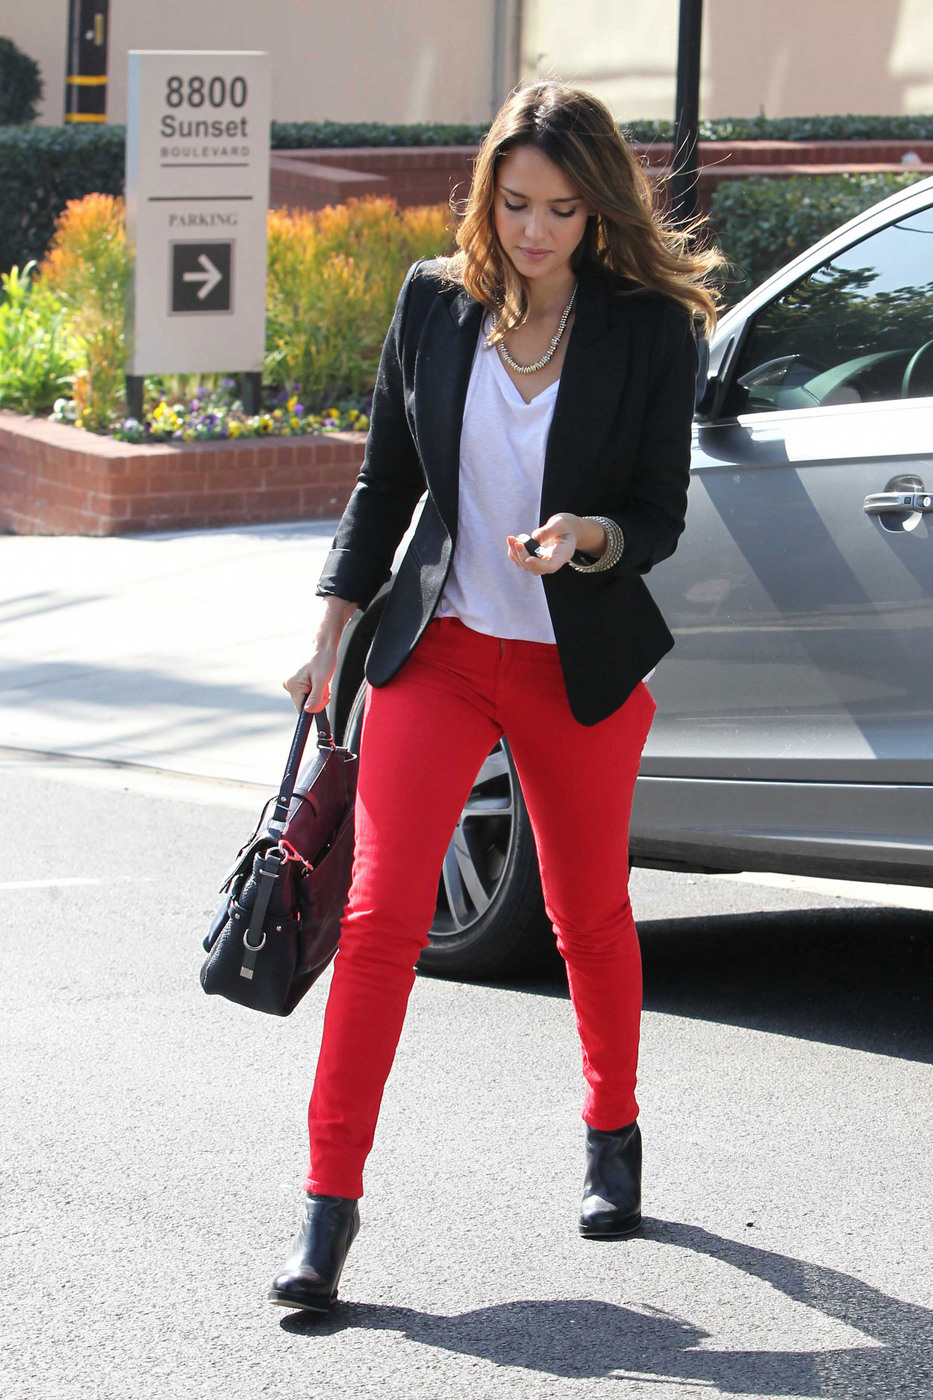 The model in blazer and red chinos.